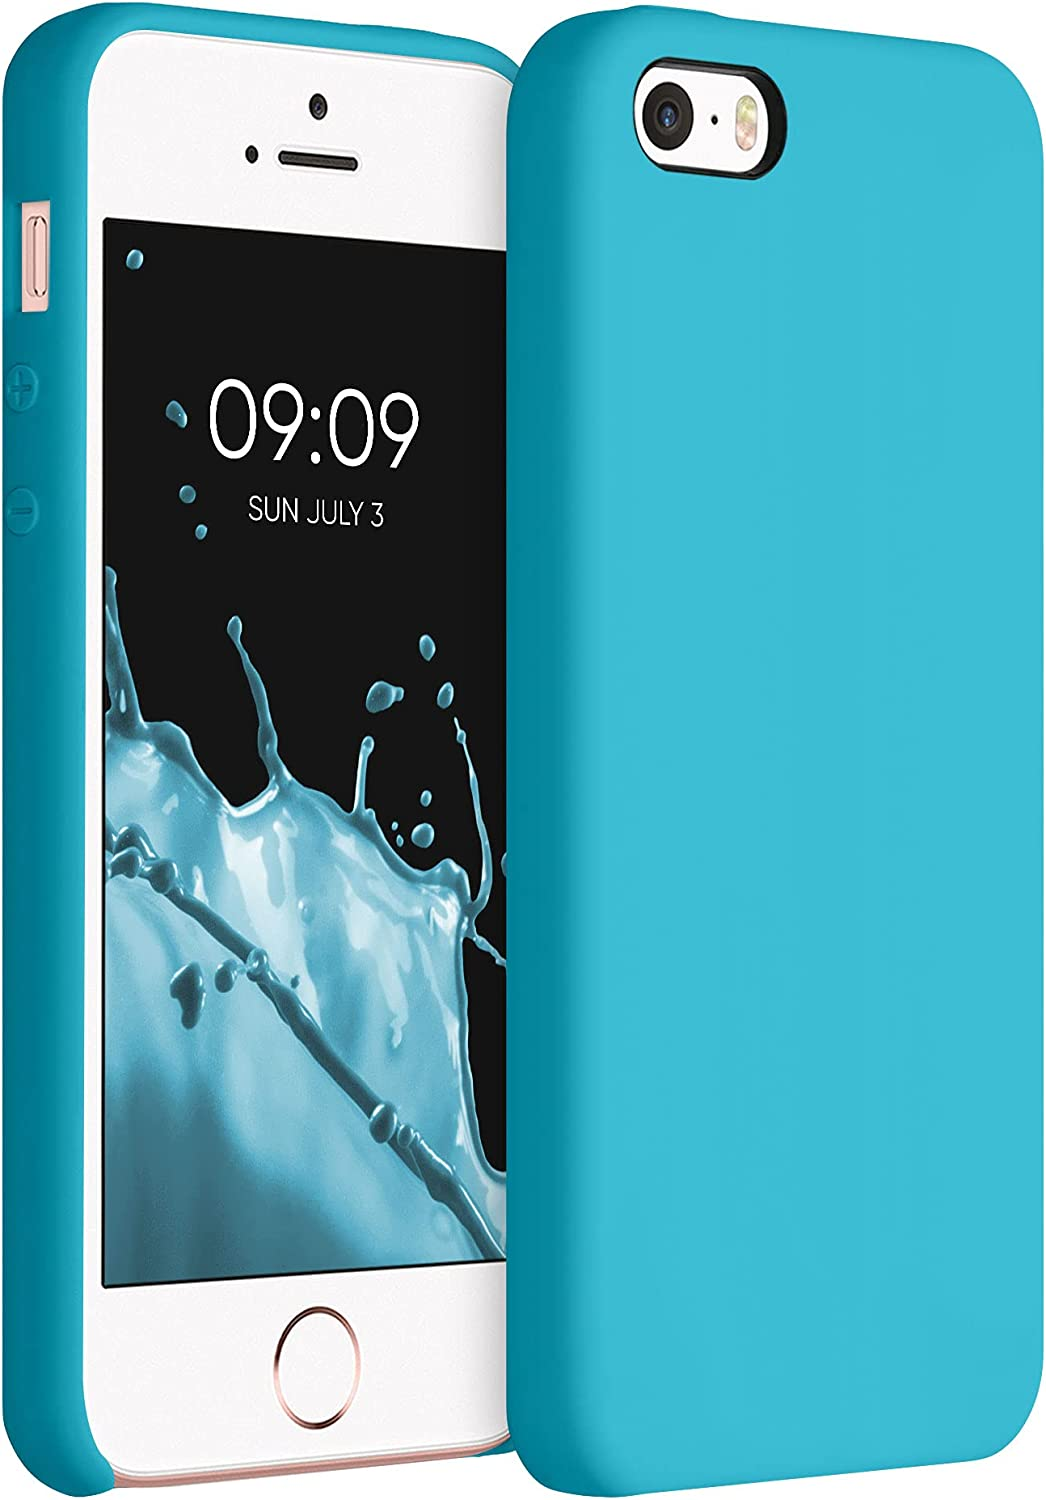 kwmobile TPU Silicone Case Compatible with Apple iPhone SE (1.Gen 2016) / 5 / 5S - Case Slim Protective Phone Cover with Soft Finish - Ocean Blue